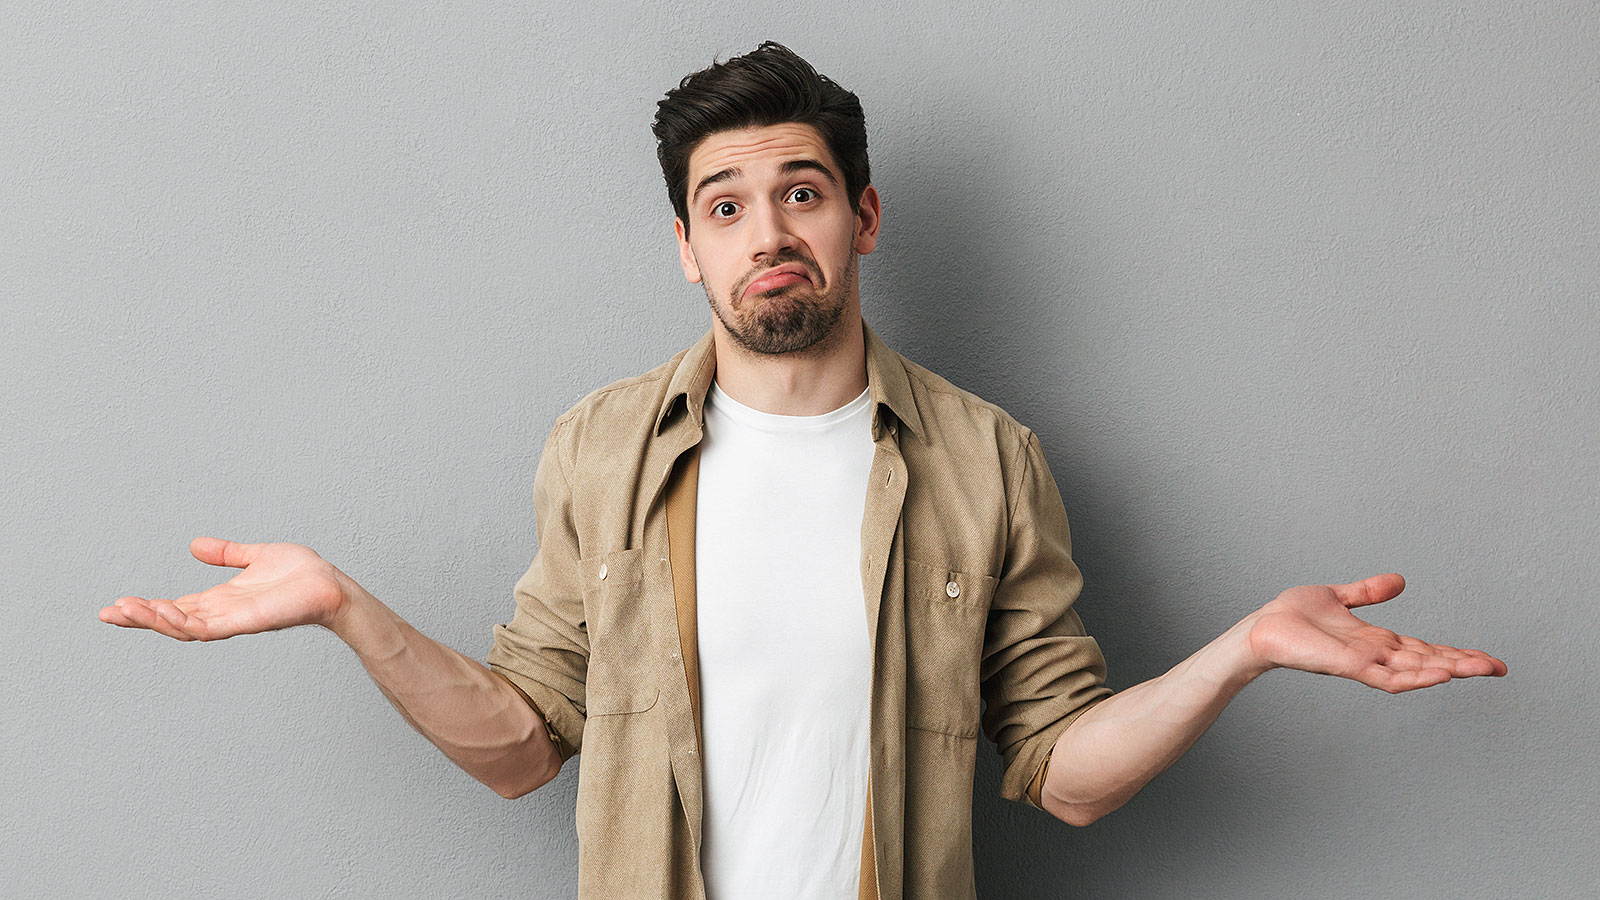 10 misused words that make smart people look stupid